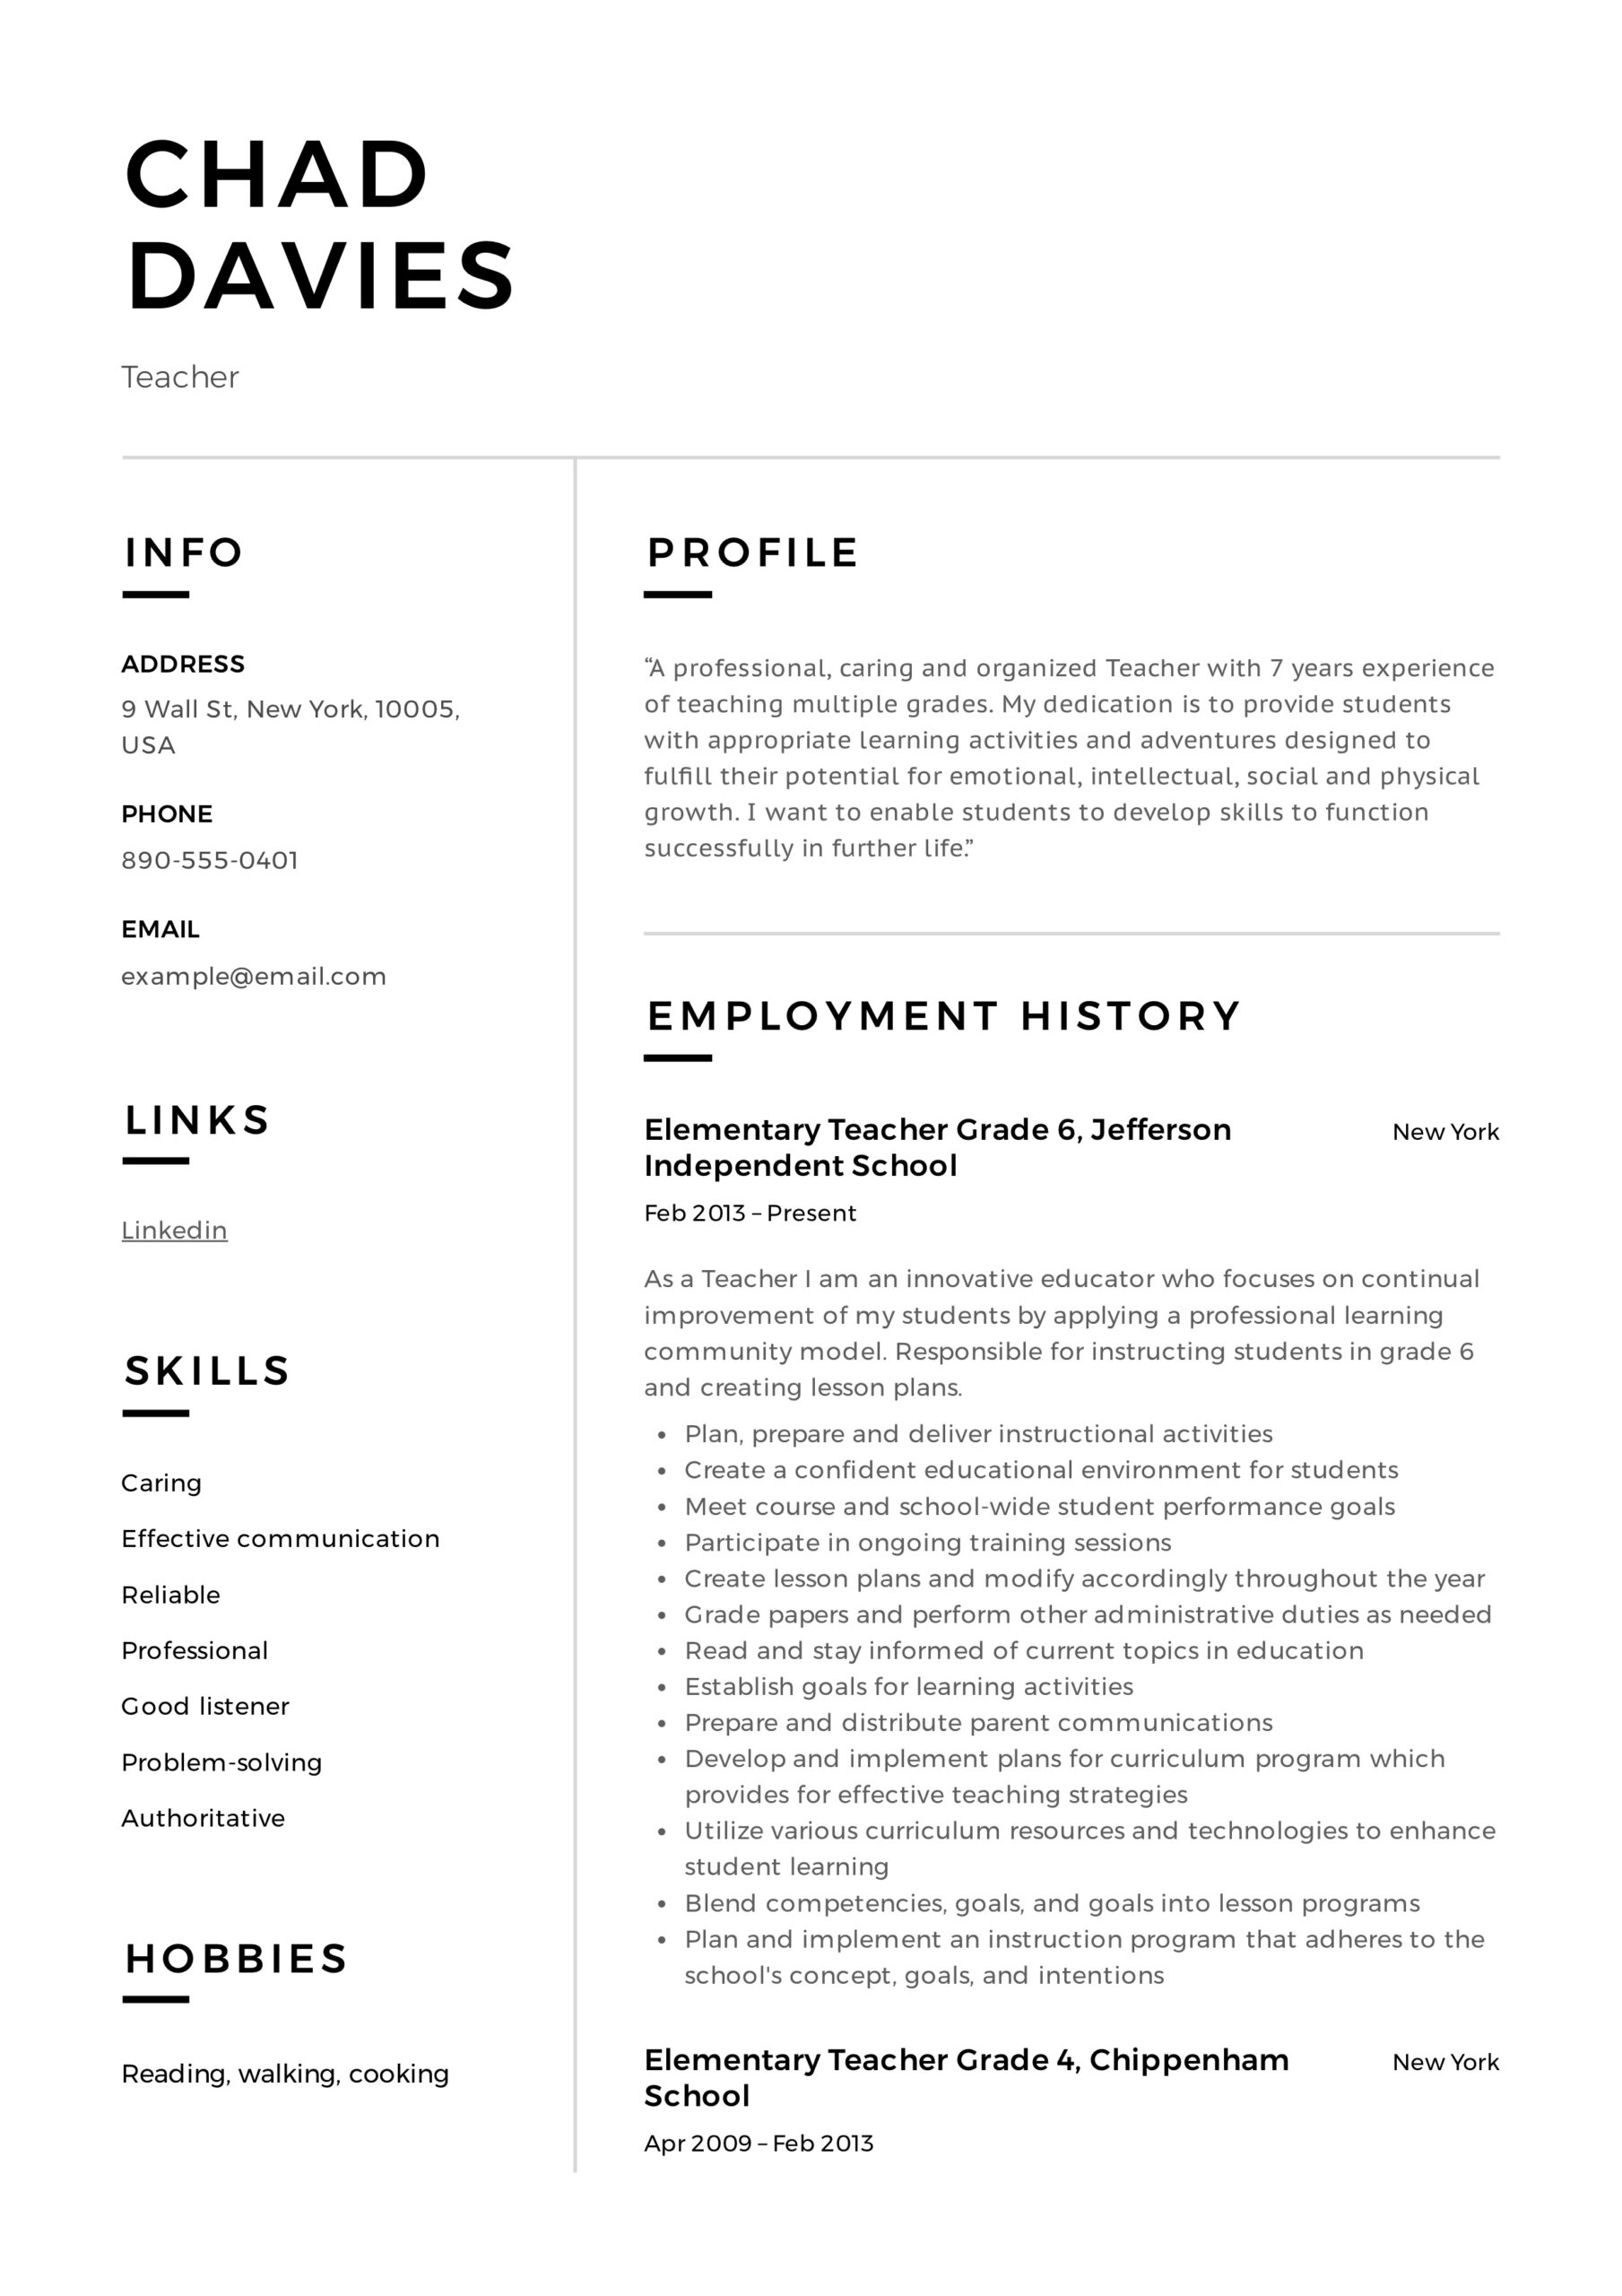 teacher resume writing guide examples pdf elementary sample poultry hotel manager skills Resume Teacher Resume Examples 2020